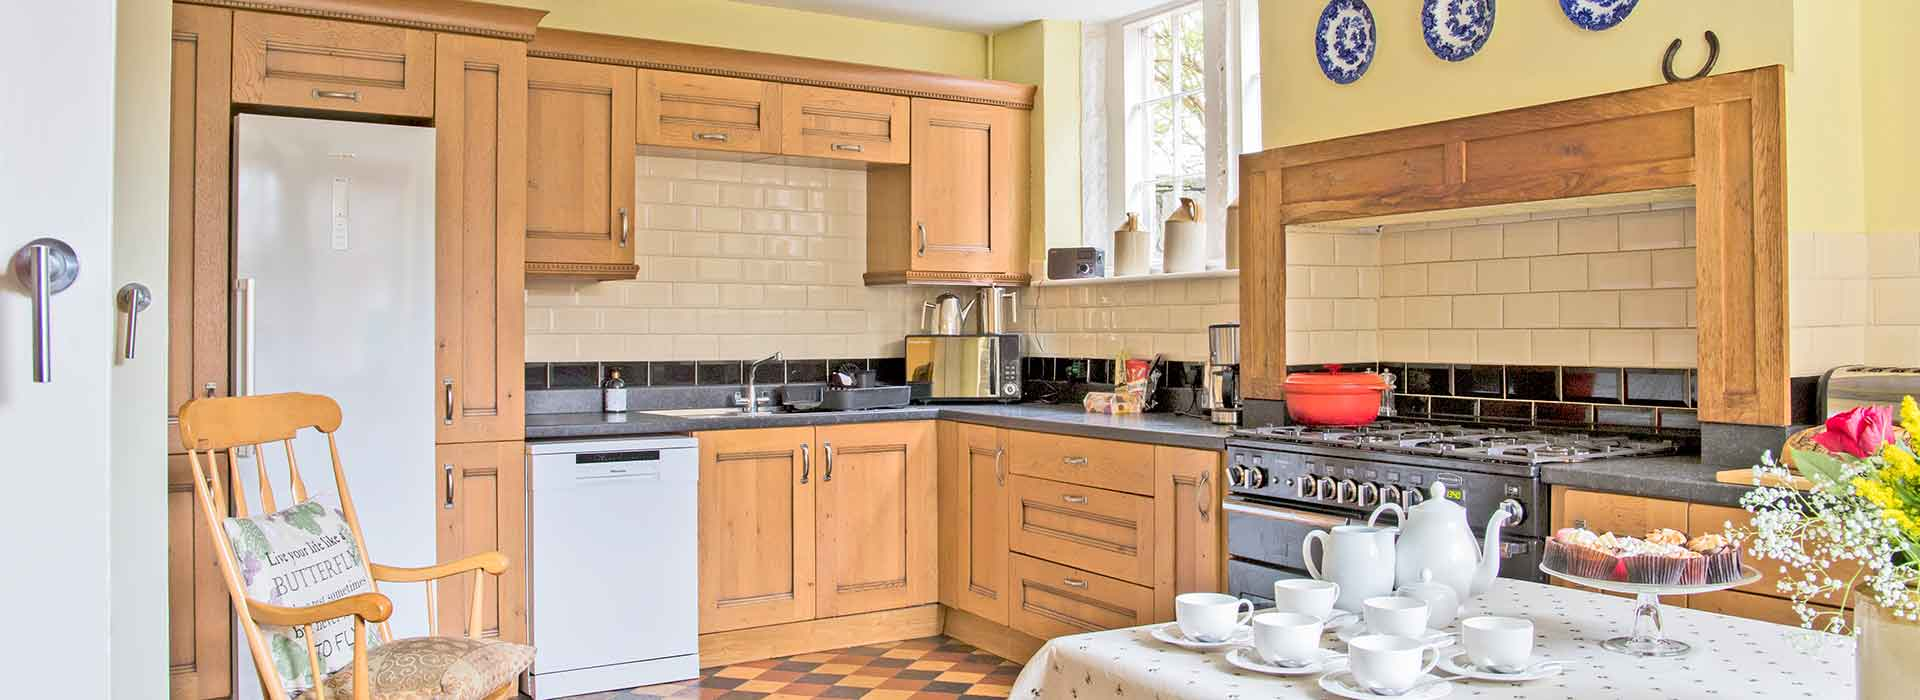 Large kitchen with view of range cooker